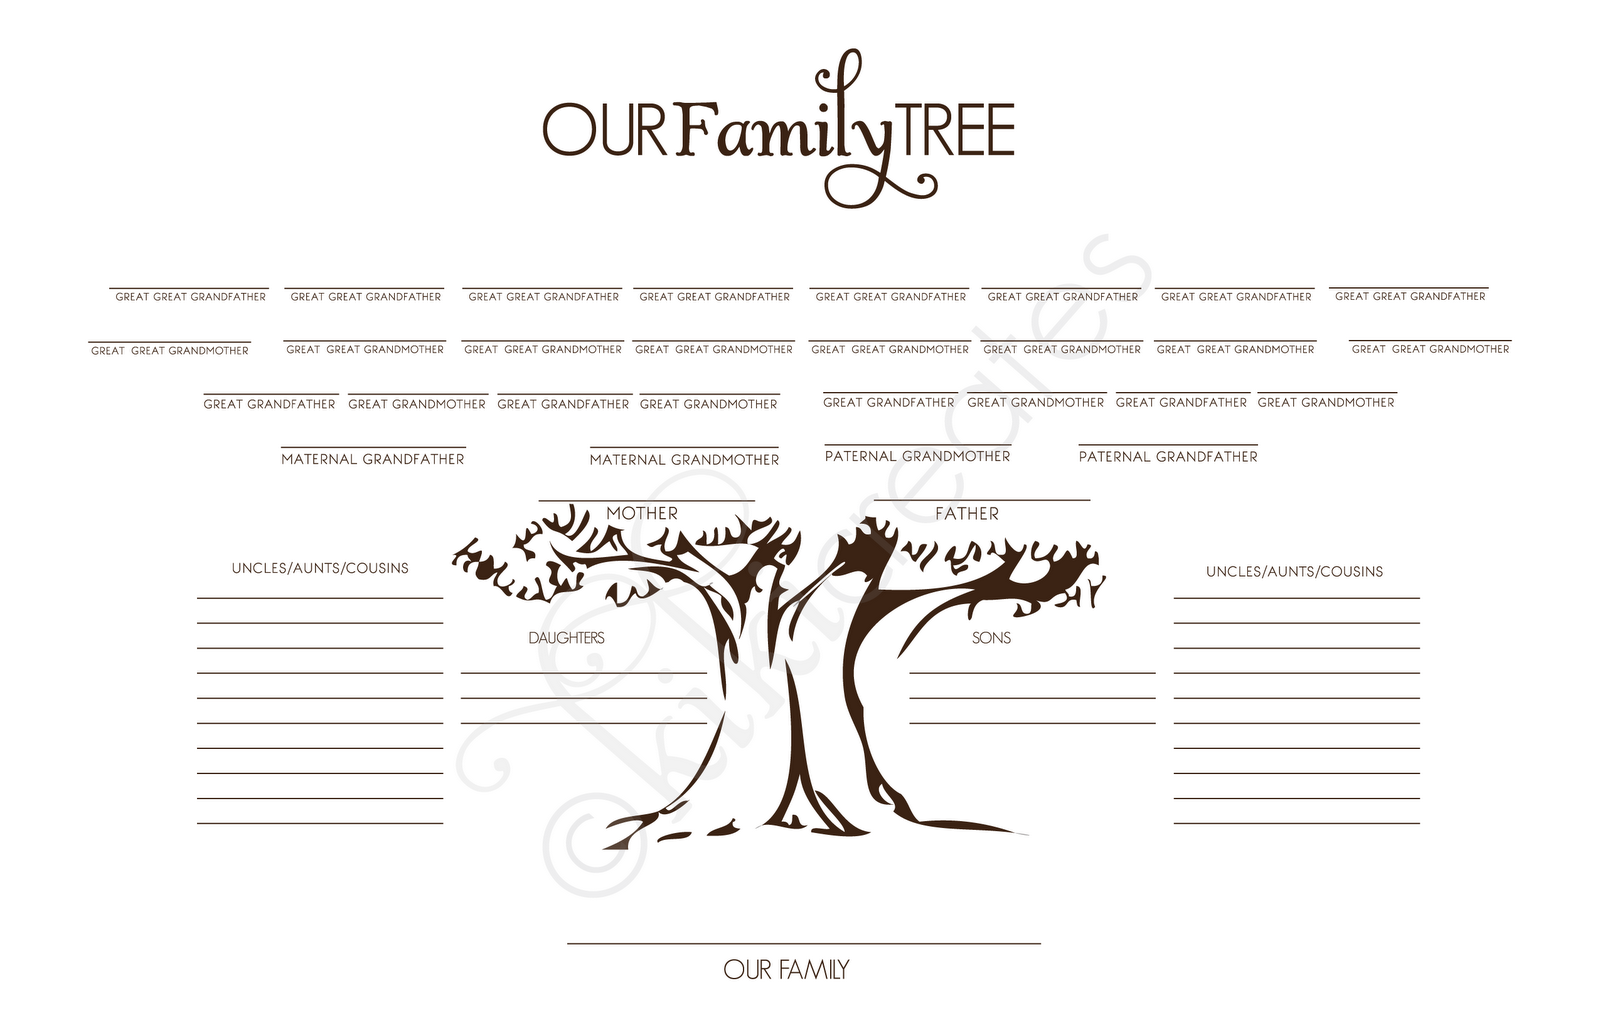 Printable Family Tree Chart 5 Generations Empty To Fill In Oneself Images